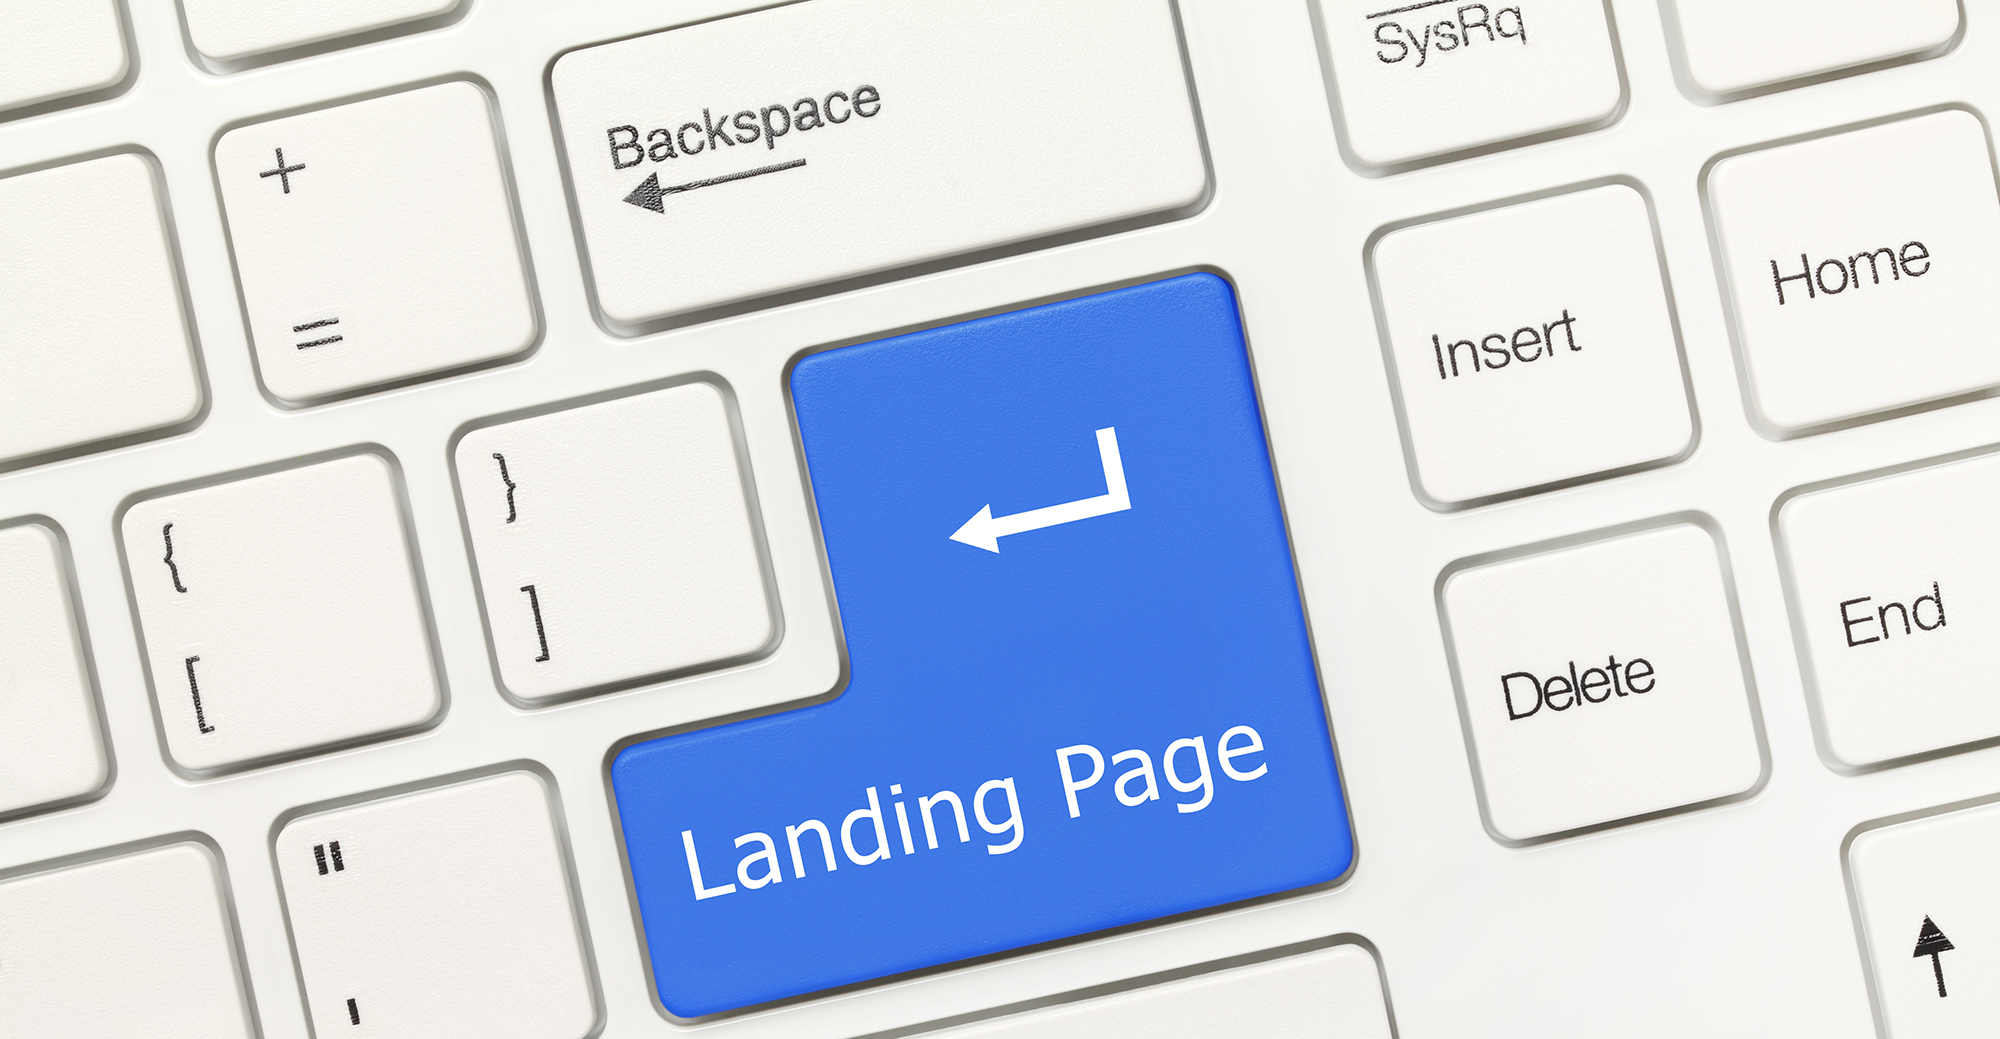 Close-up view on white conceptual keyboard - Landing Page (blue key)